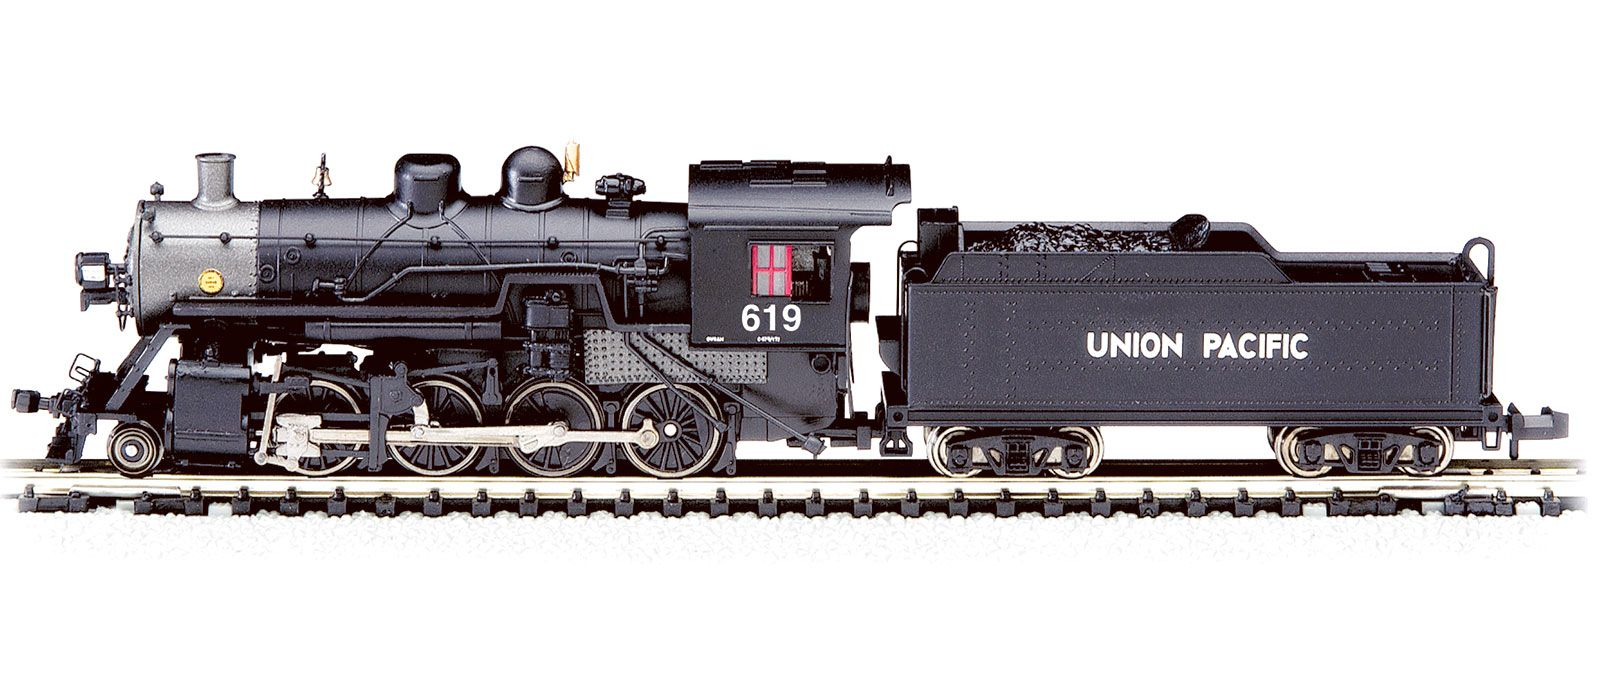 Scale steam locomotives for sale n scale steam locomotives - Scale Bachmann N Baldwin 2 8 0 Consolidation Steam Locomotive Union Pacific No